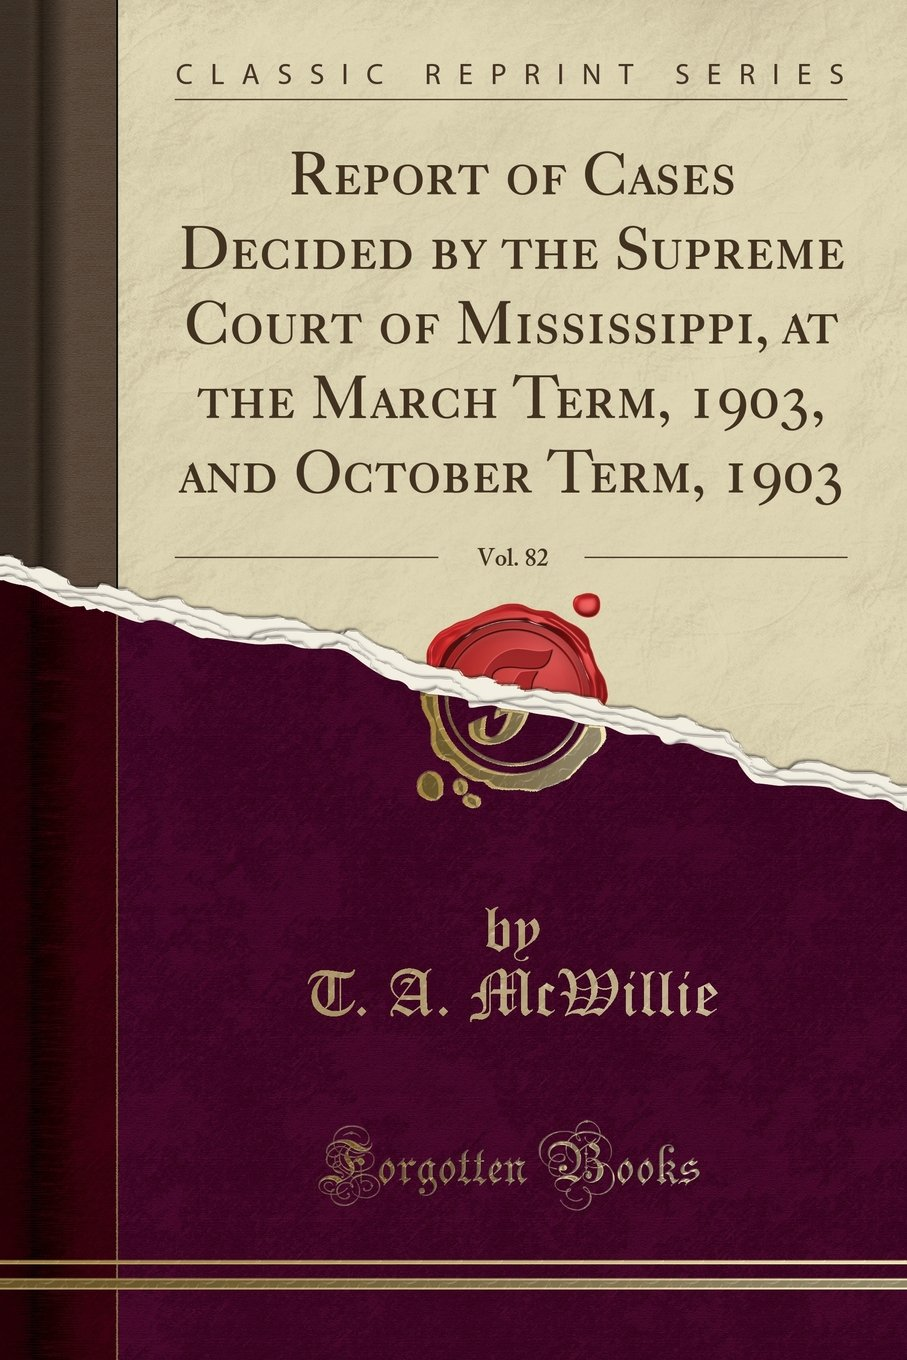 Report of Cases Decided by the Supreme Court of Mississippi, at the March Term, 1903, and October Term, 1903, Vol. 82 (Classic Reprint) PDF